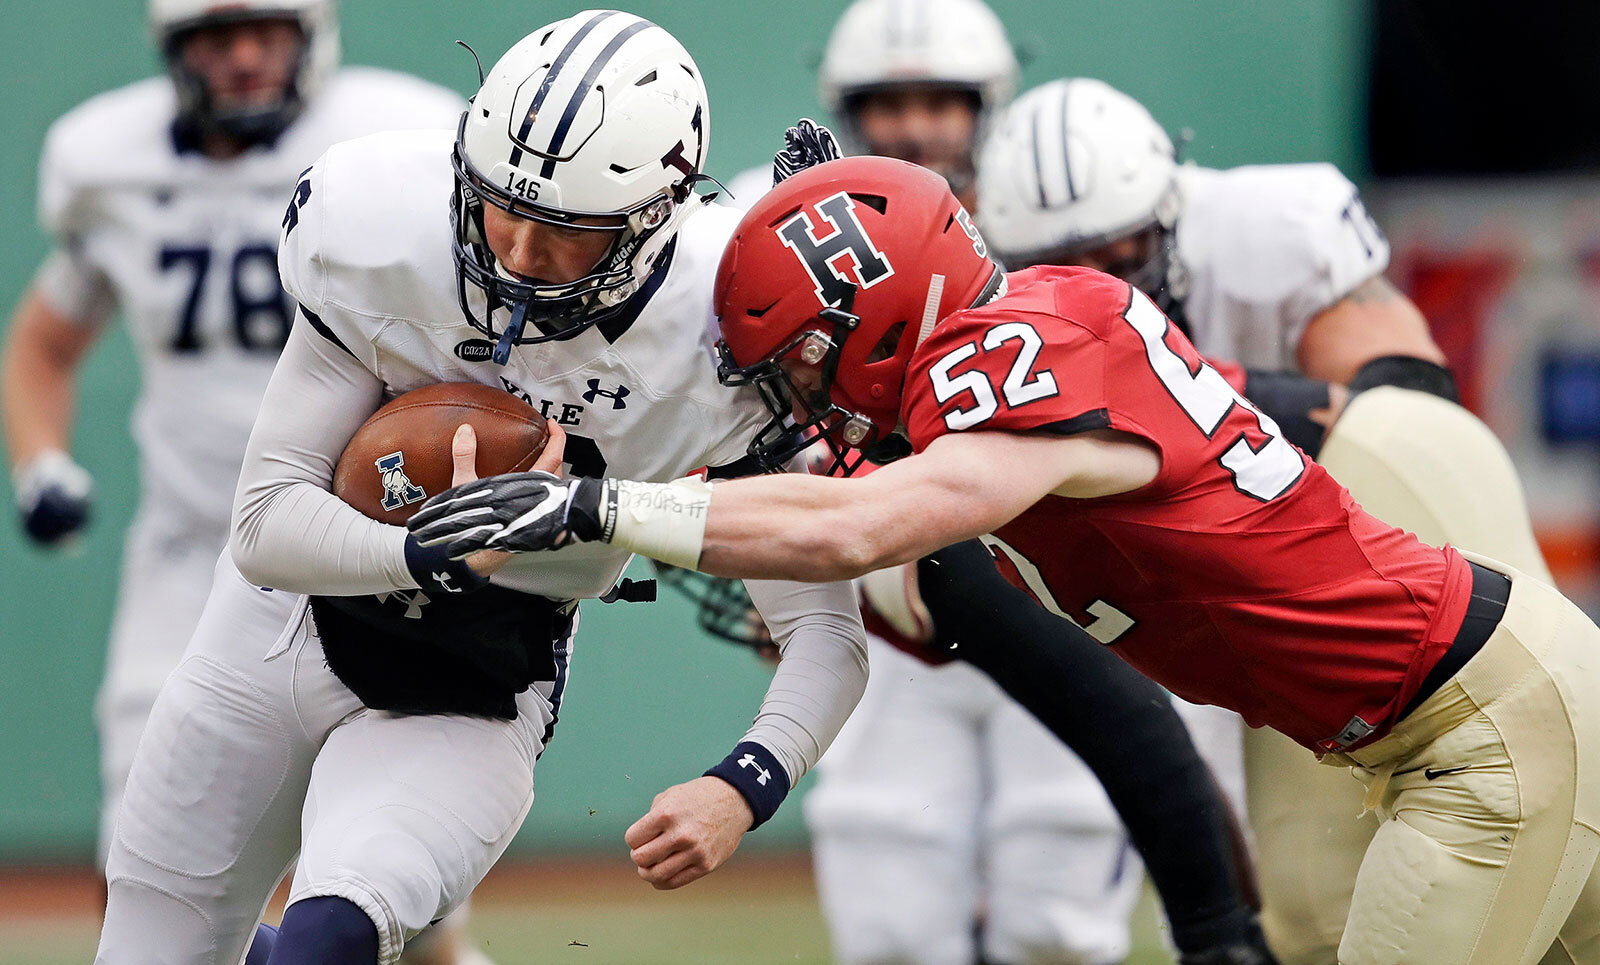 In this November 17, 2018 file photo, Yale quarterback Griffin O'Connor, left, tries to elude Harvard linebacker Cameron Kline (52) while scrambling for a gain during the first half of an NCAA college football game at Fenway Park in Boston.